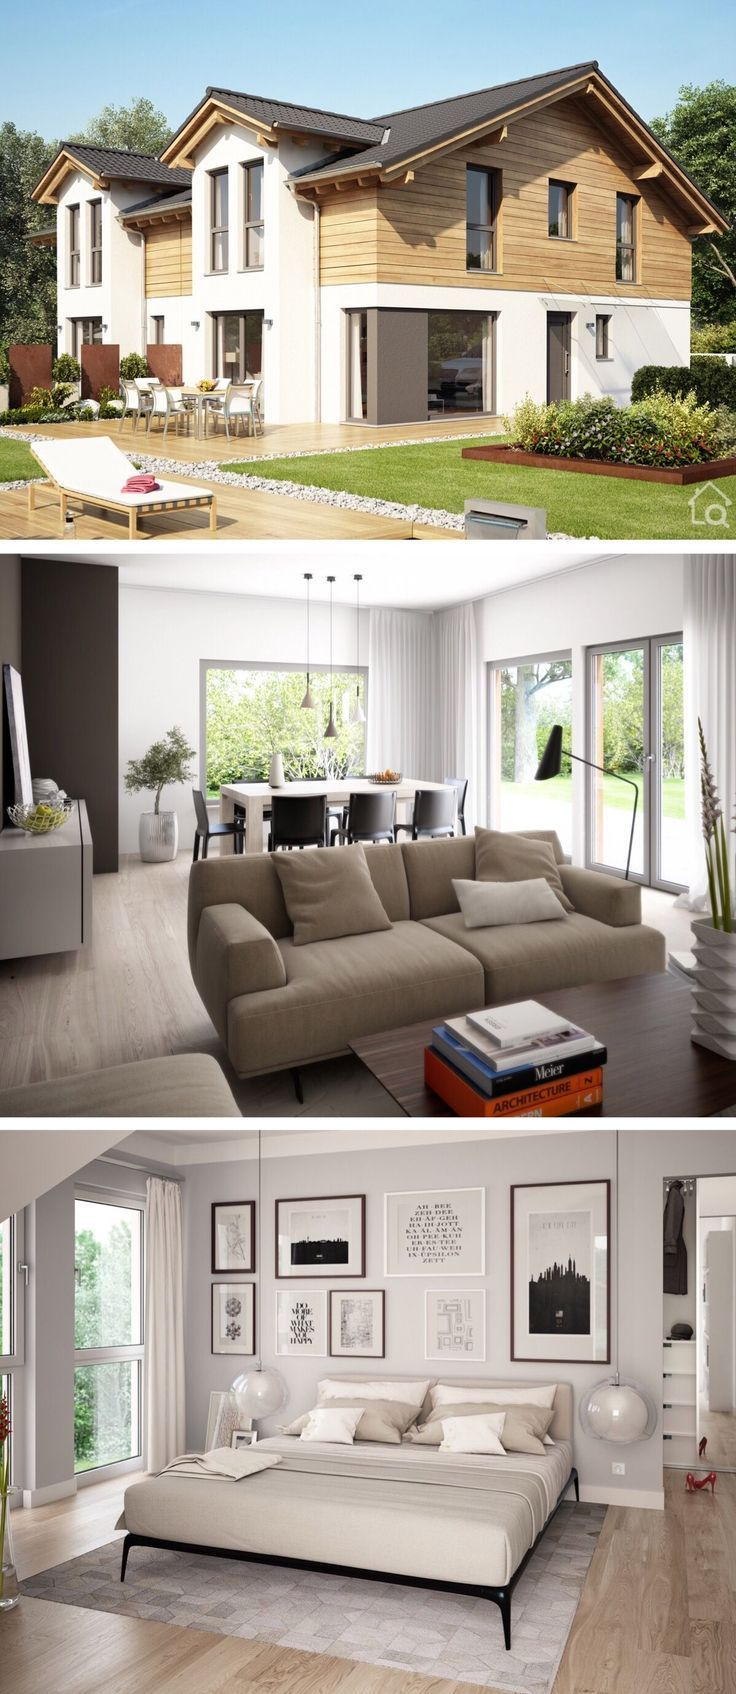 Modern family house with modern furnishings